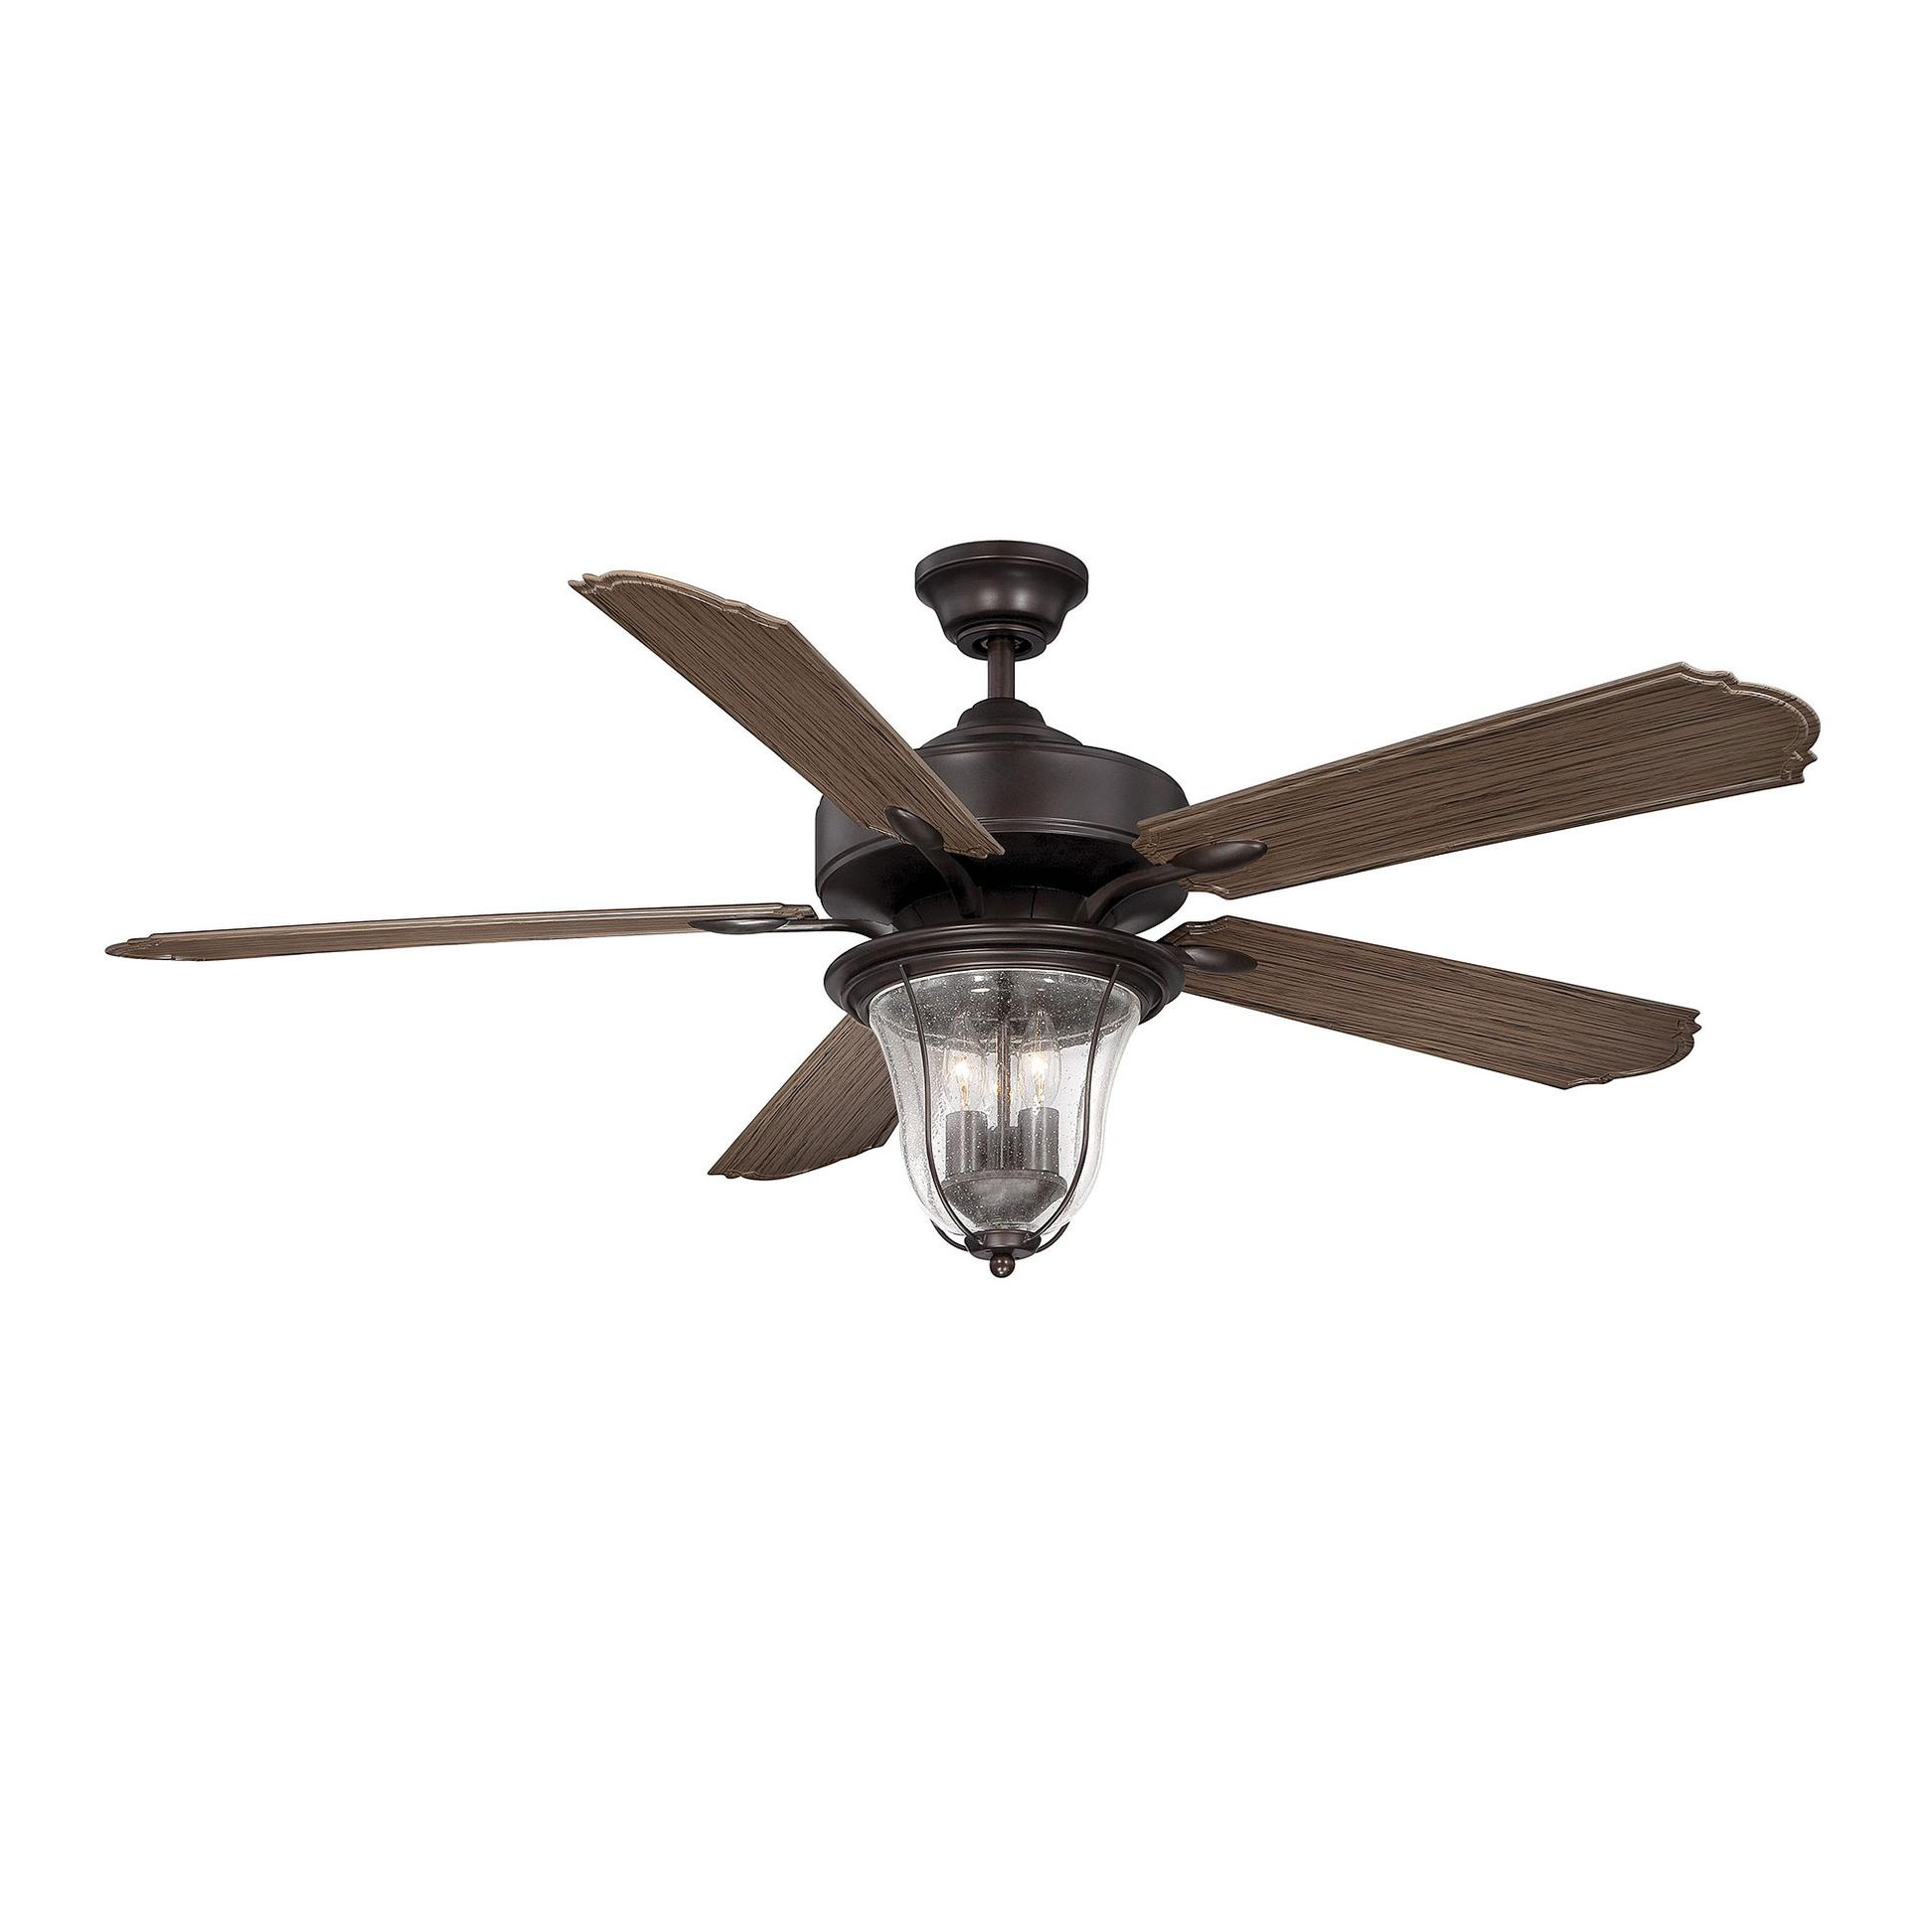 Trudy outdoor ceiling fan with light by savoy house 52 135 5wa 13 aloadofball Choice Image